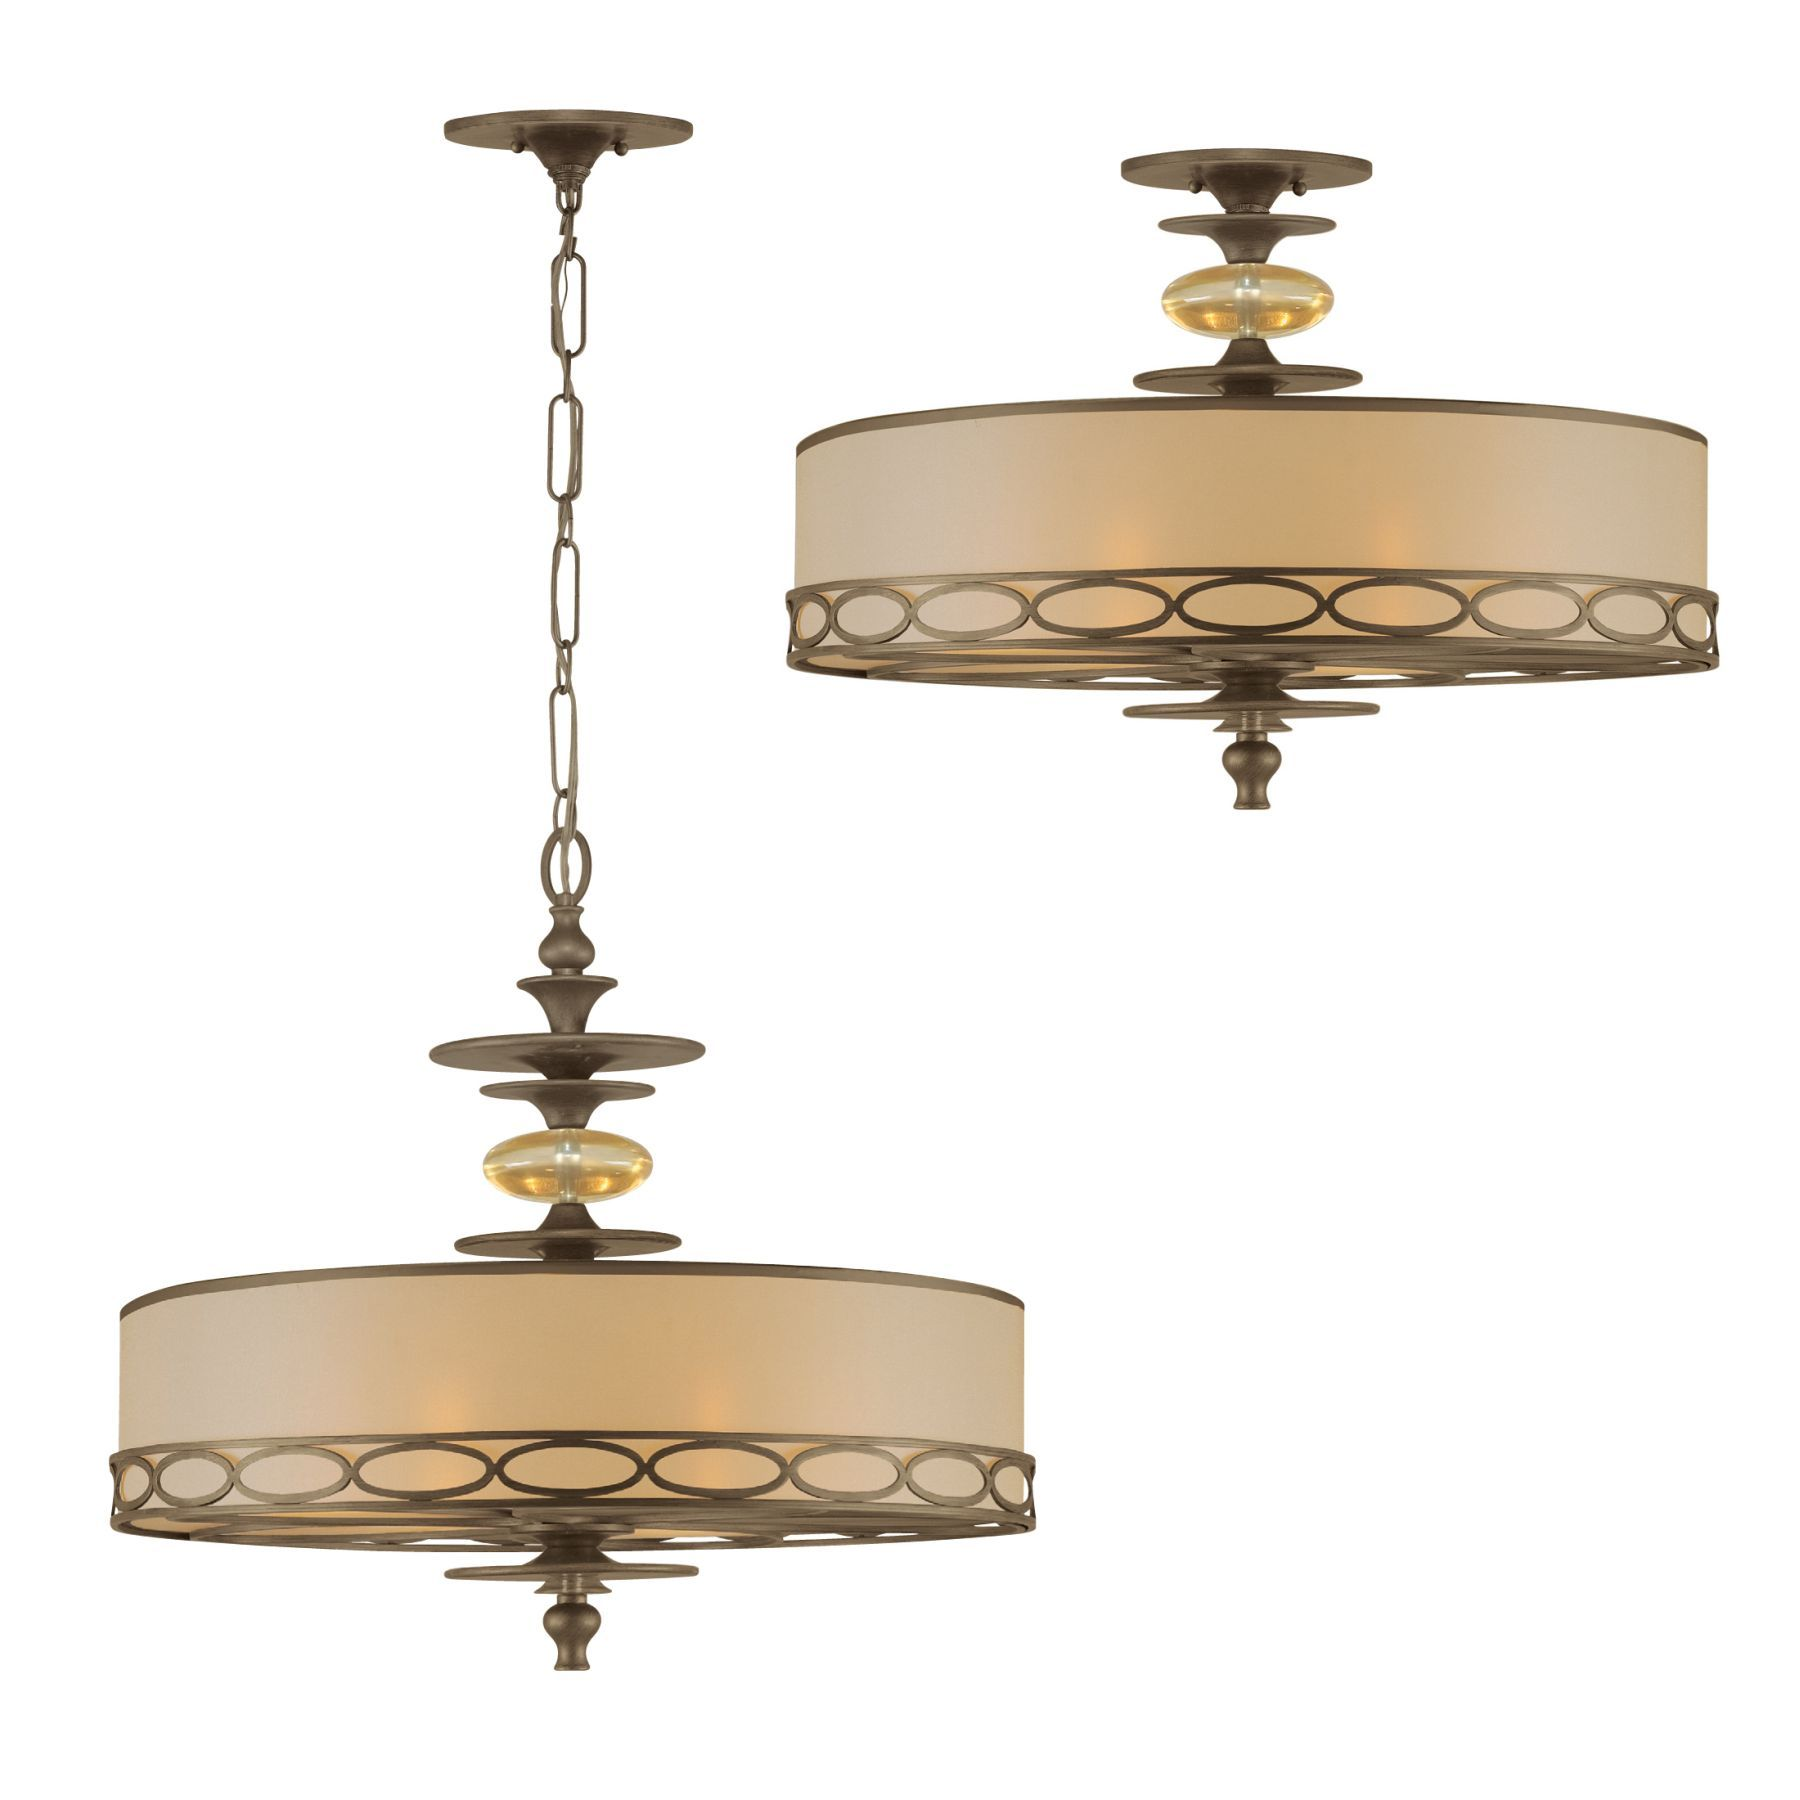 Crystorama 9609 ab light gold semi sheer shade antique brass crystorama 9609 ab light gold semi sheer shade antique brass chandelier traditional brass gold 1 tier aloadofball Image collections